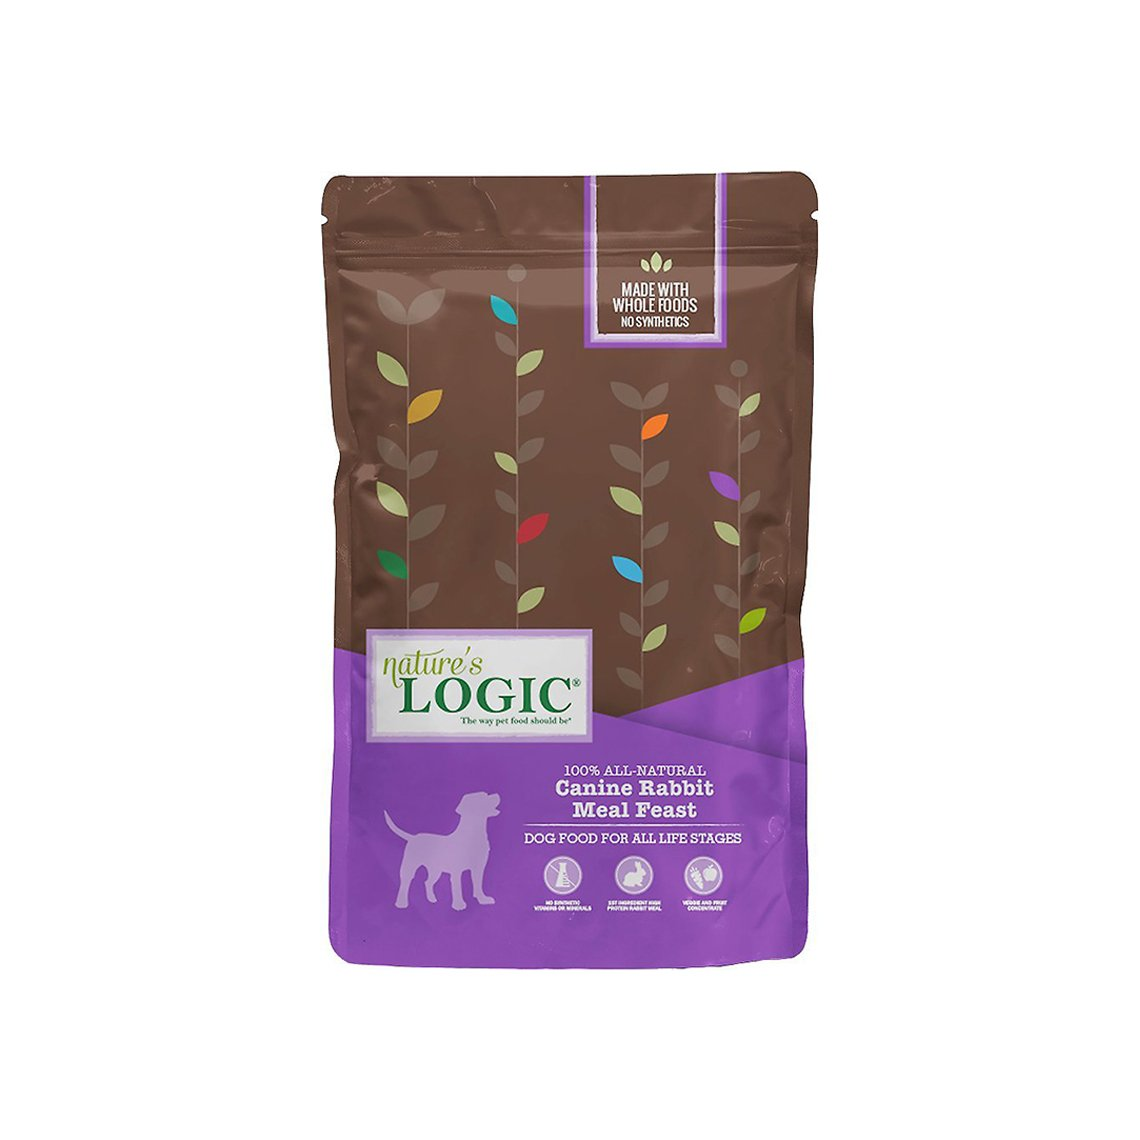 Nature's Logic Original Rabbit Meal Feast Dry Food for Dogs